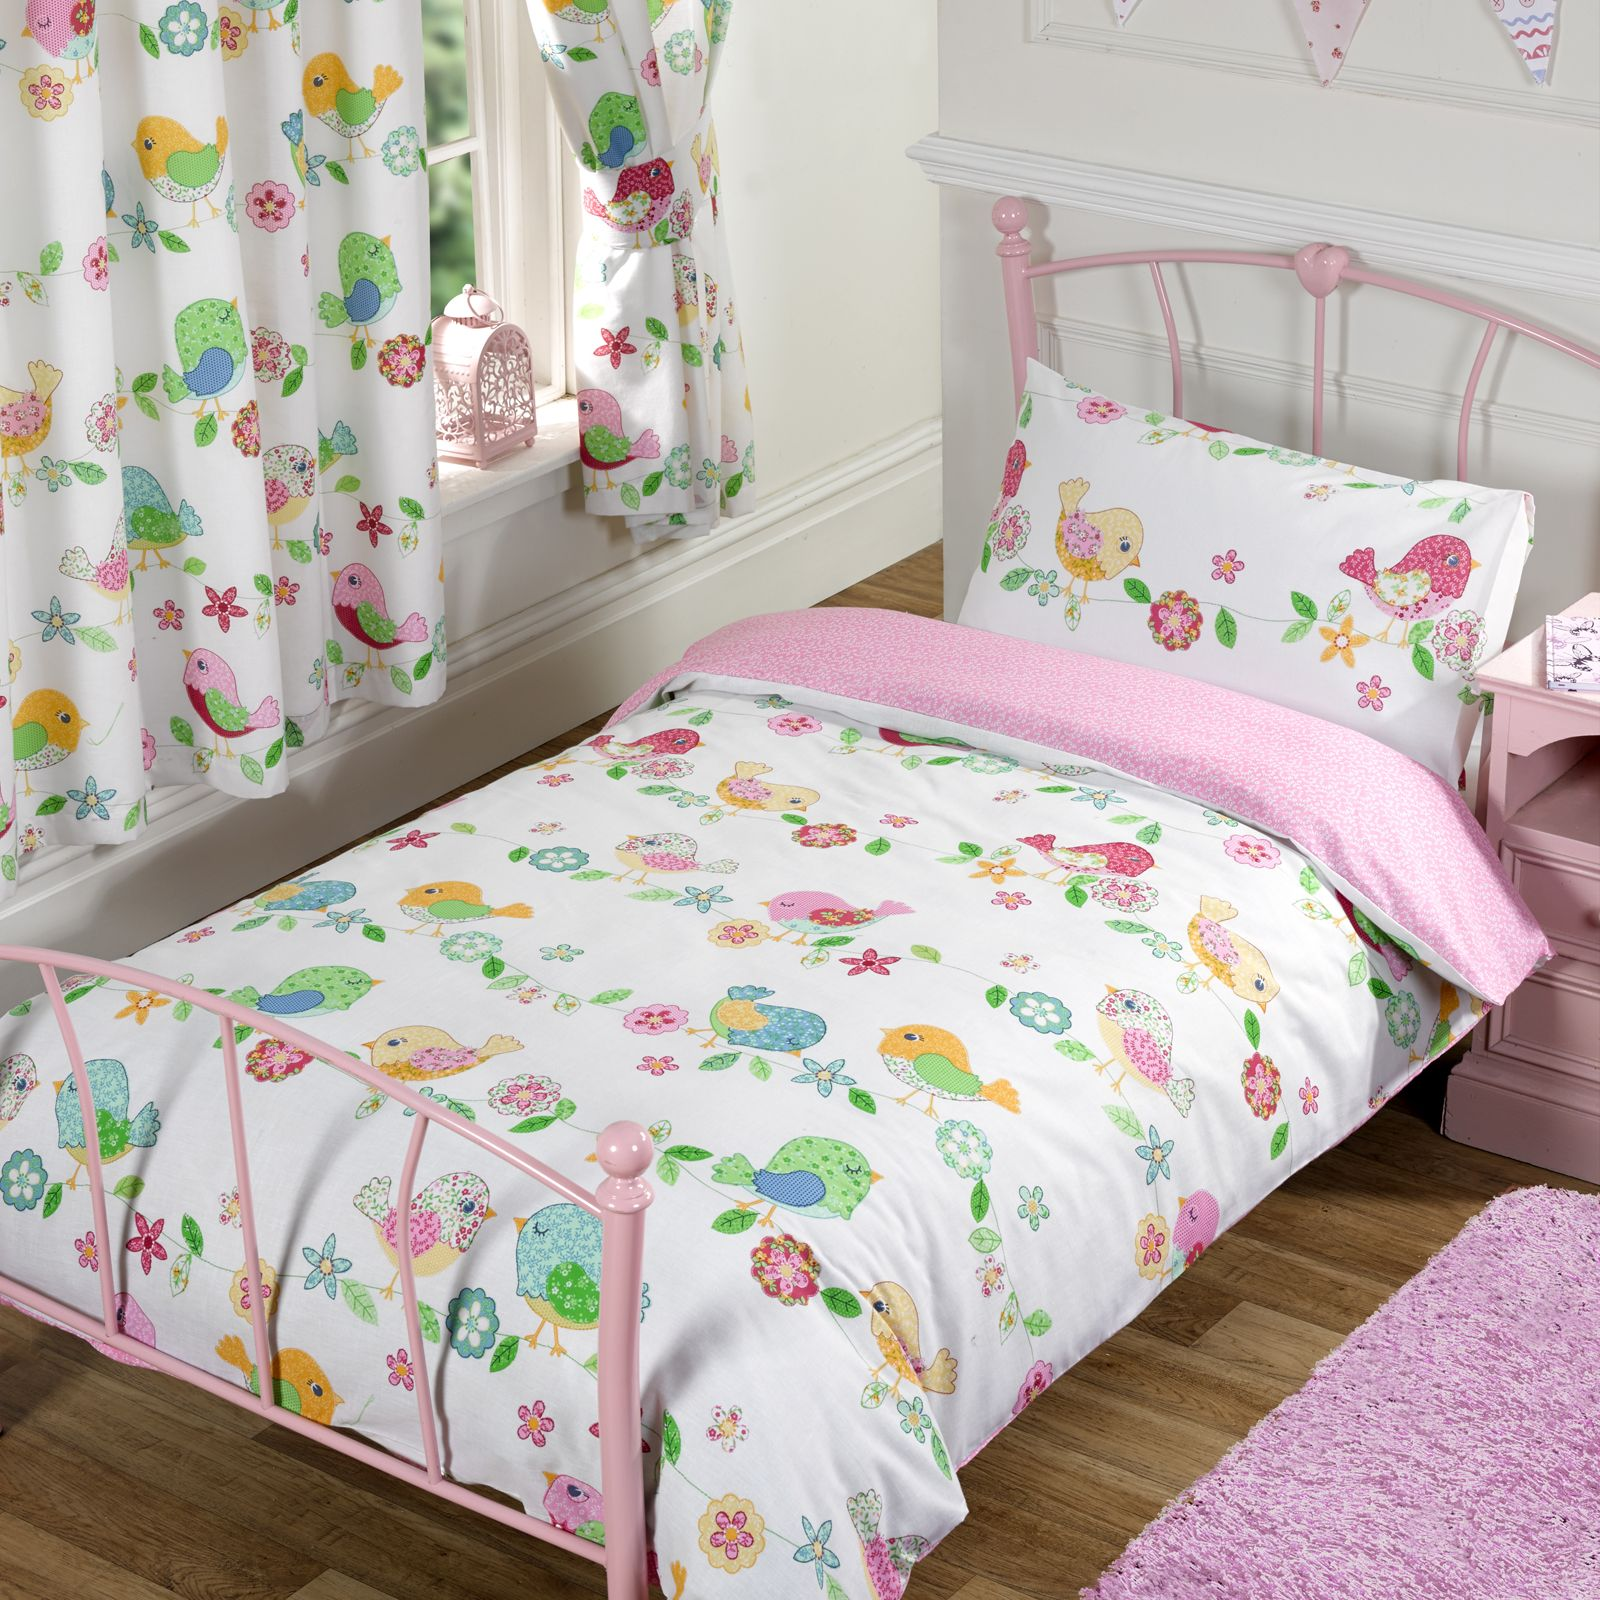 enfants housse couette simple ensembles gar ons filles literie licorne ebay. Black Bedroom Furniture Sets. Home Design Ideas